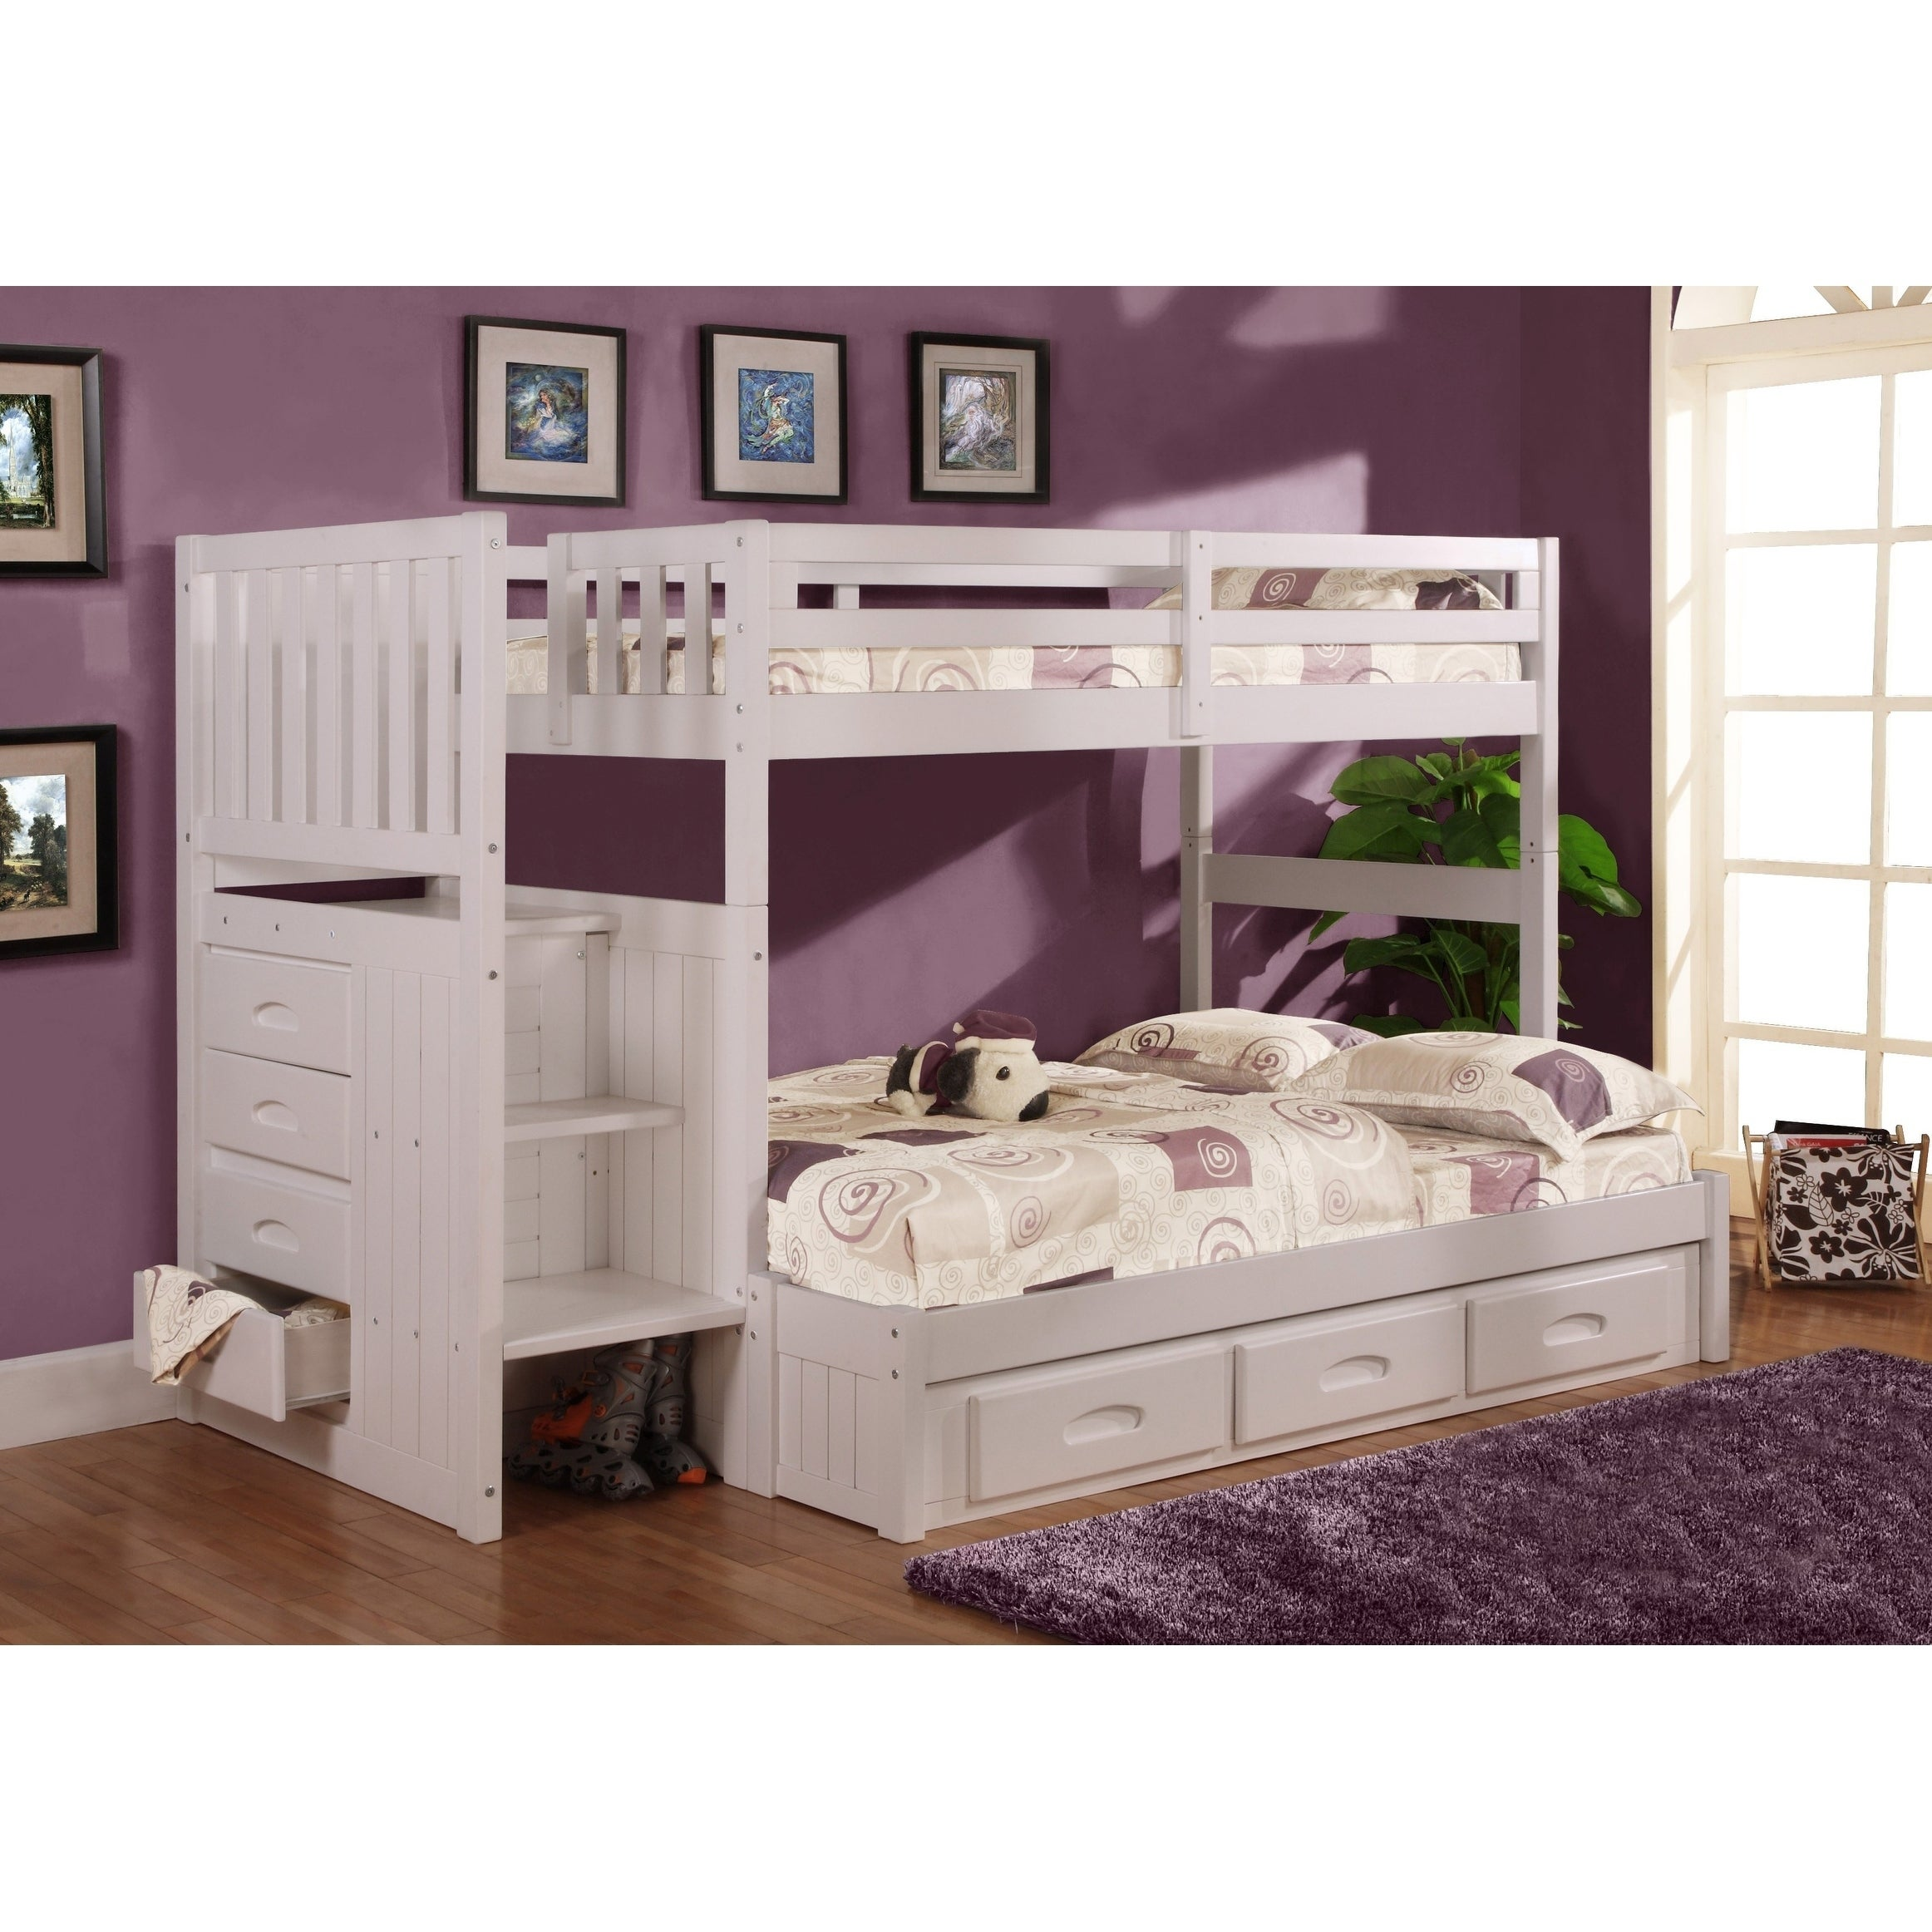 Picture of: American Furniture Classics Model 0214 Tfw Solid Pine Mission Staircase Twin Full Bunk Bed With Seven Drawers In White On Sale Overstock 23431955